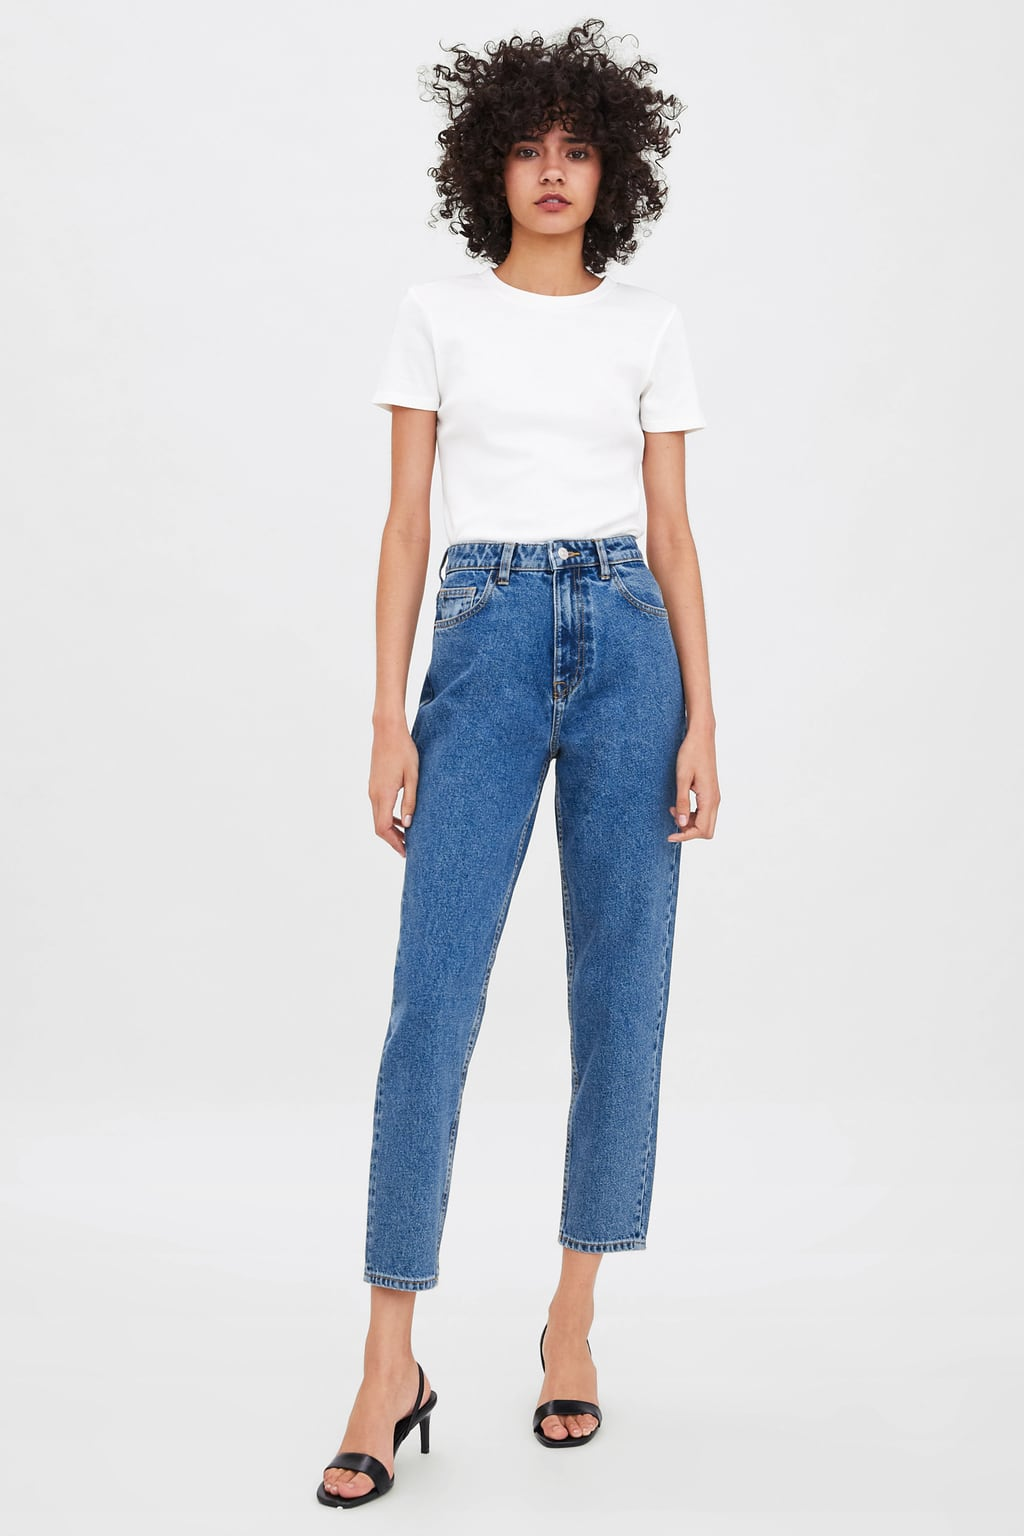 Authentic Denim Mom Fit Jeans View All Jeans Trf New Collection by Zara